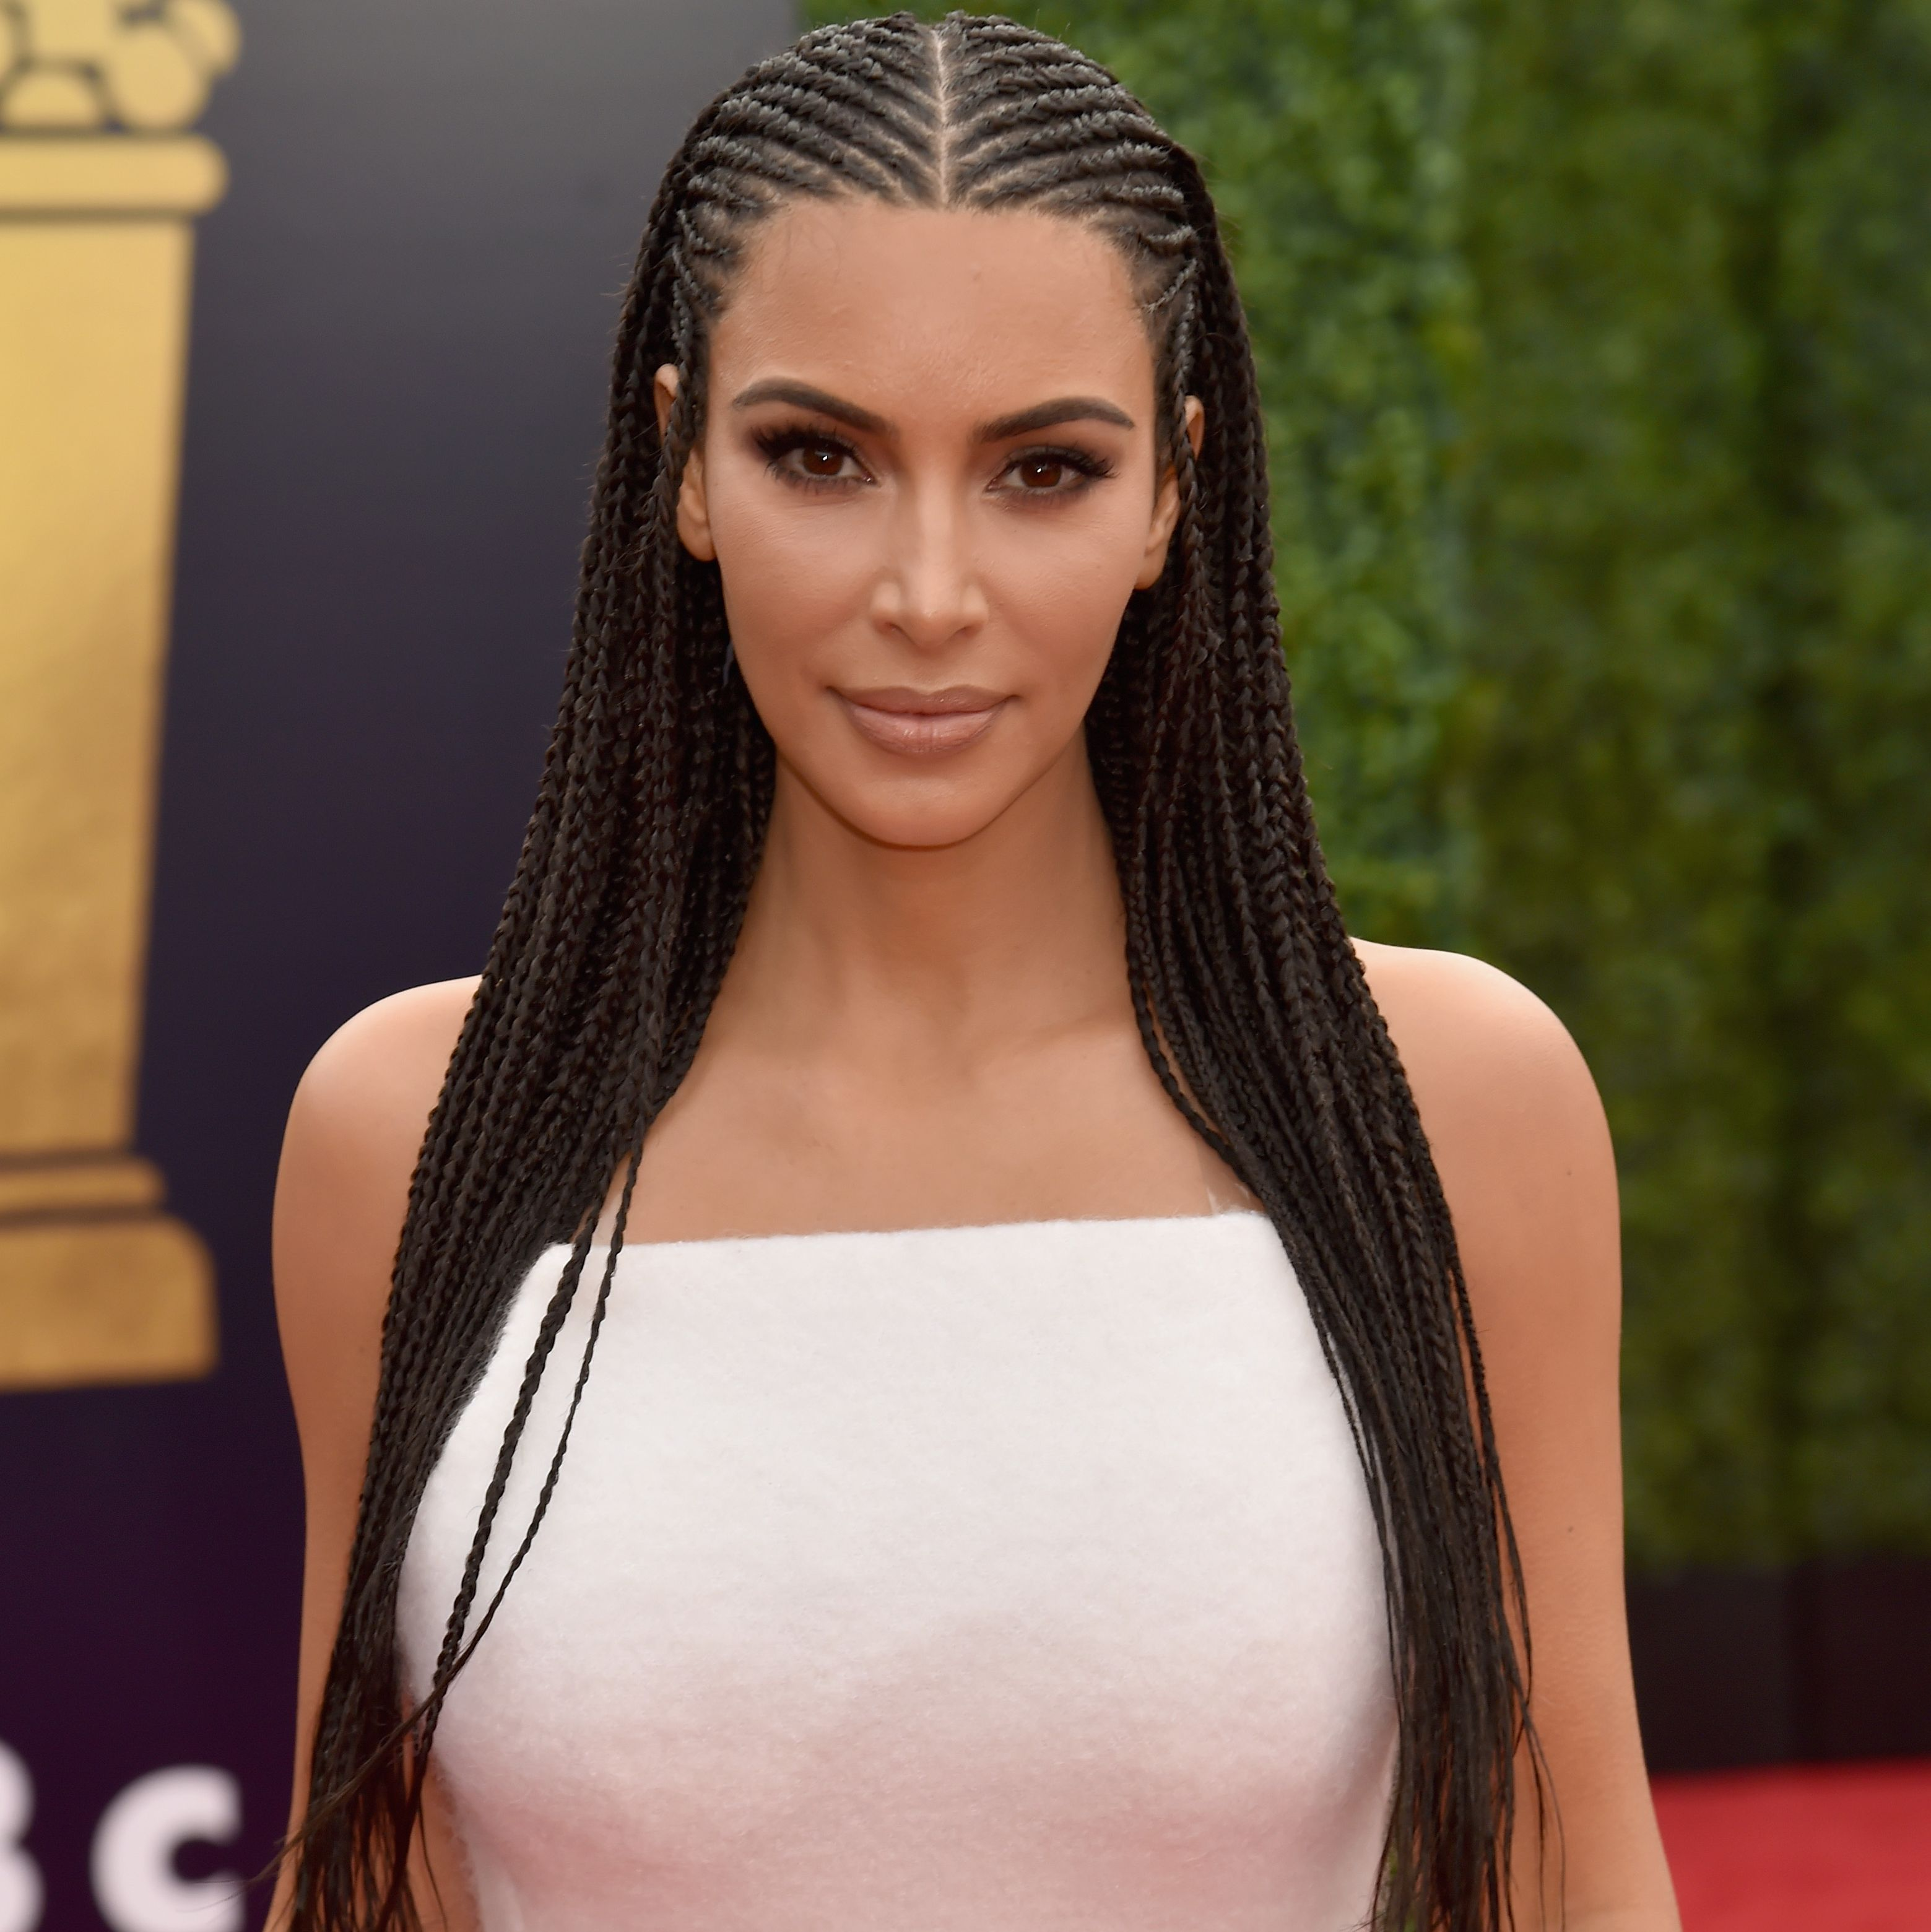 Kim Kardashian Tried to Squash Cultural Appropriation Claims With a Weird Throwback Photo